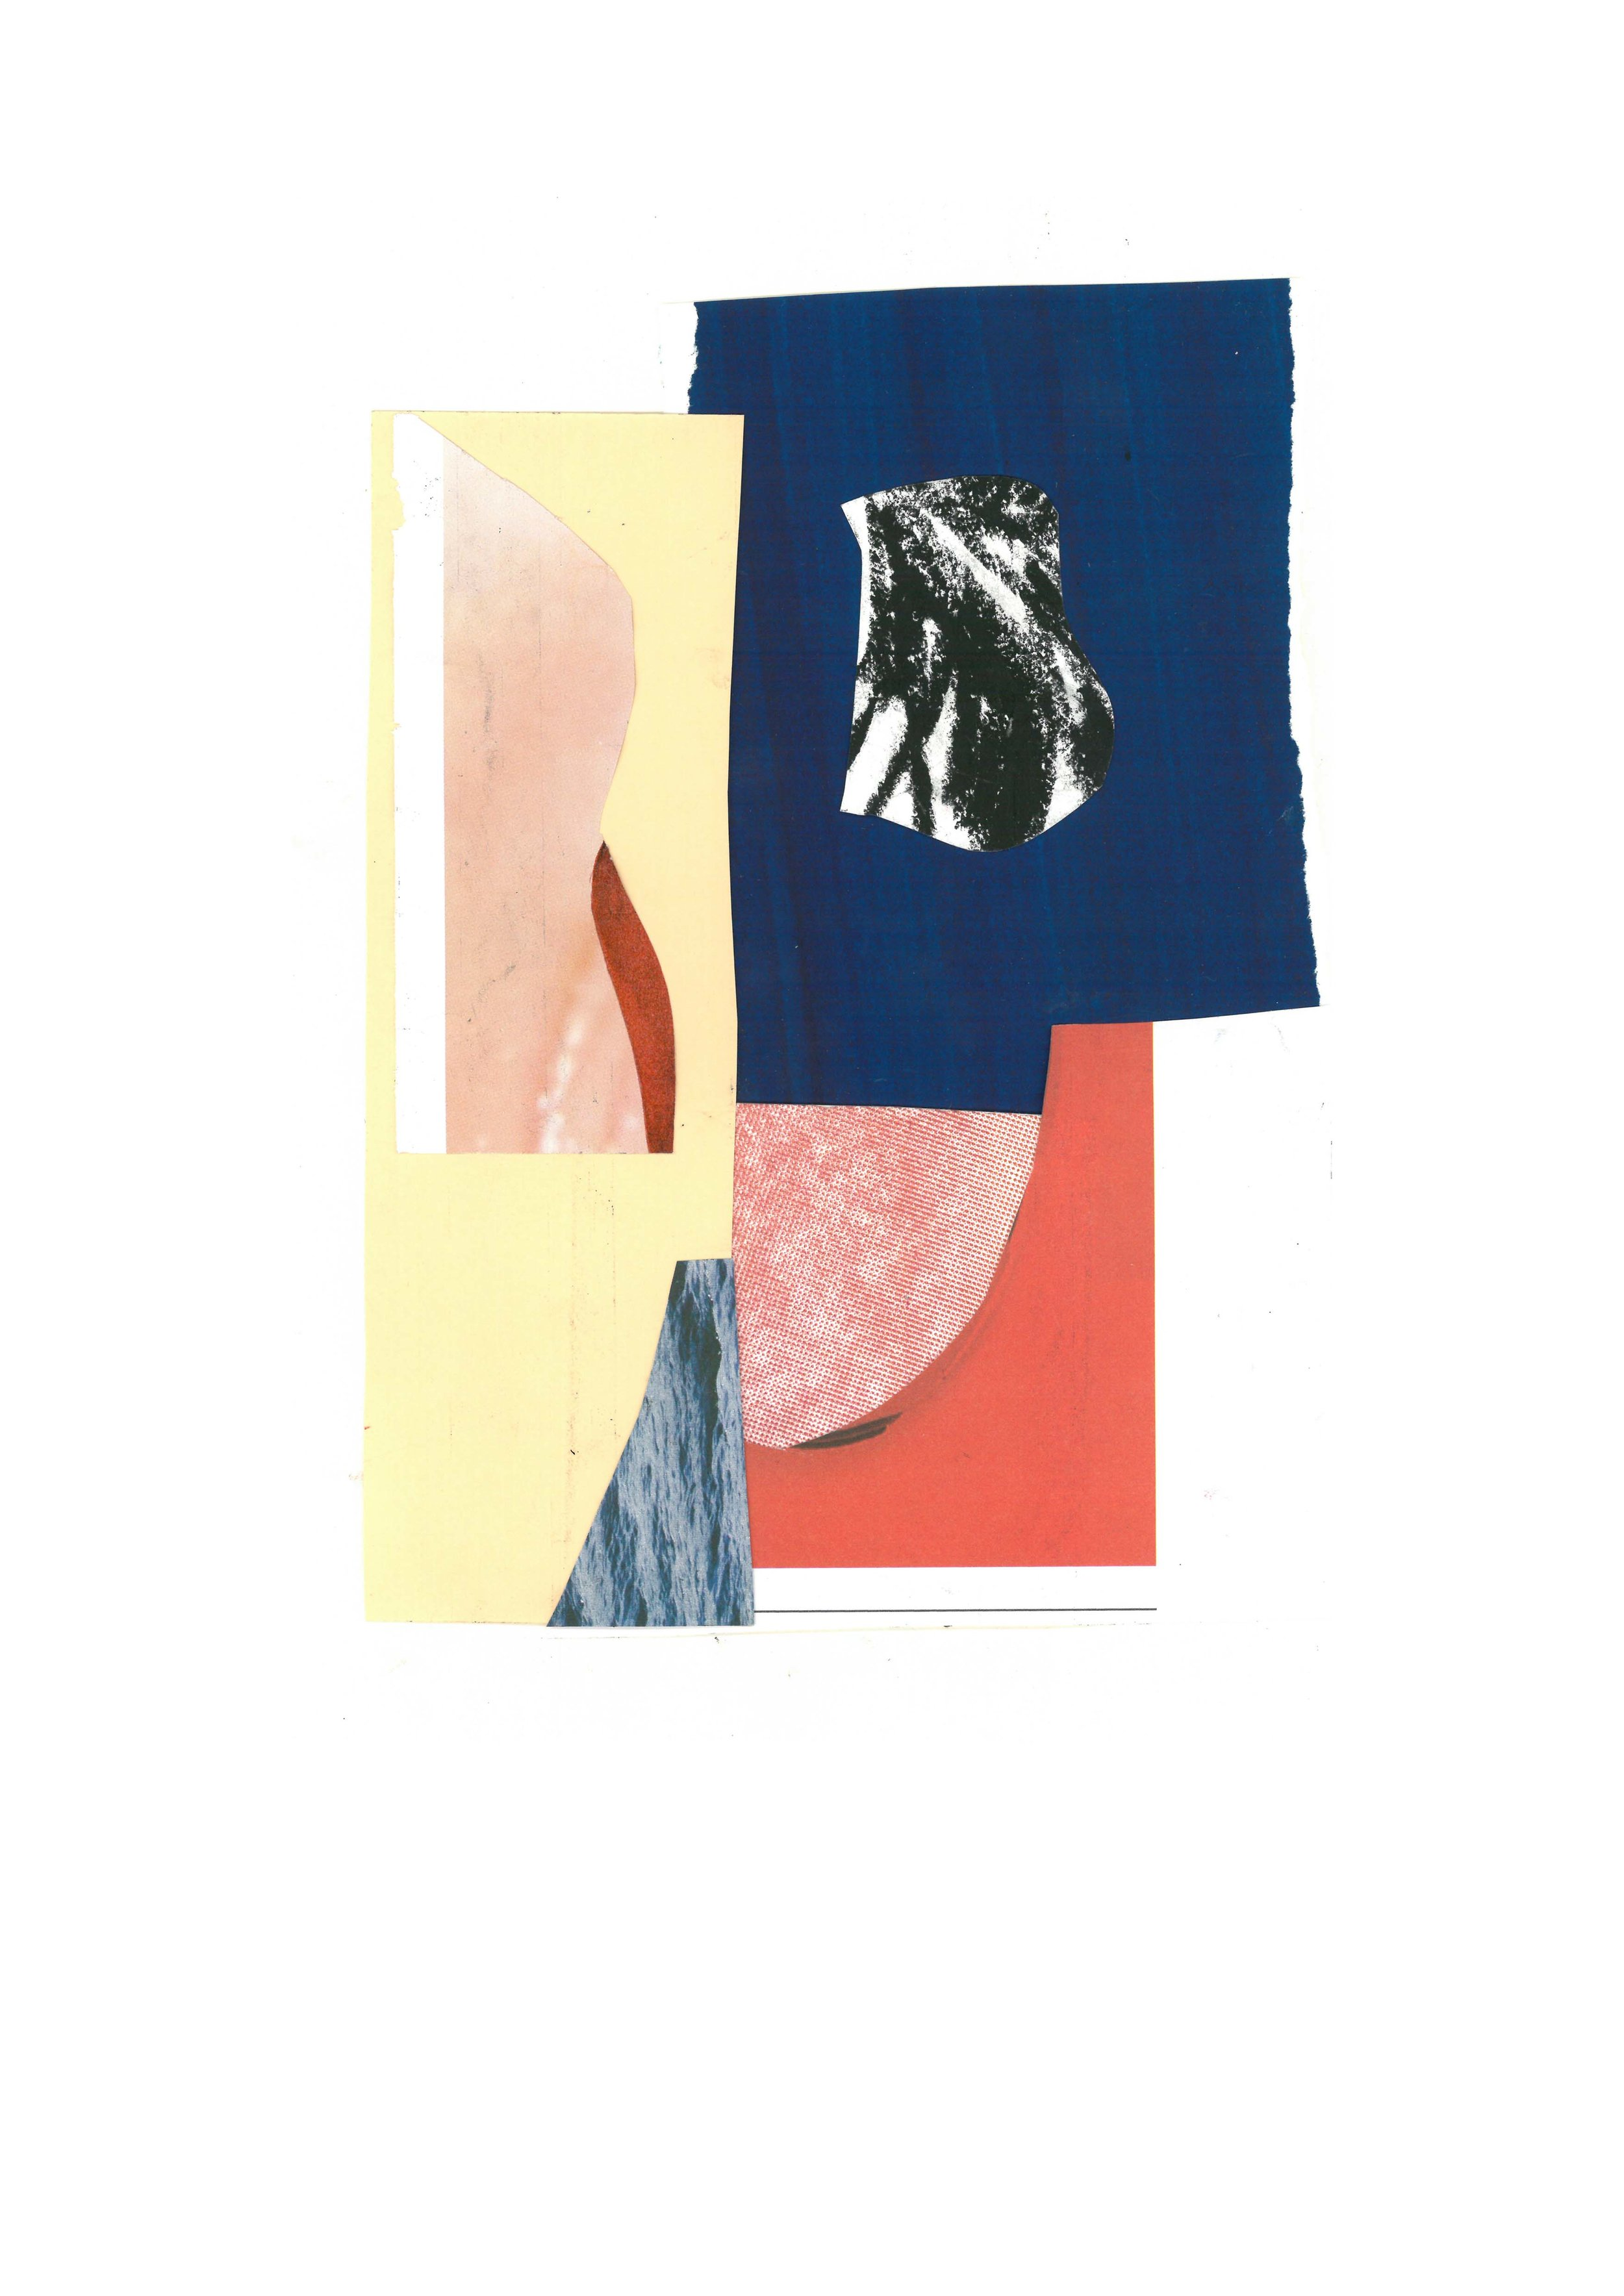 Series of collages made together with Catrin Karlberg